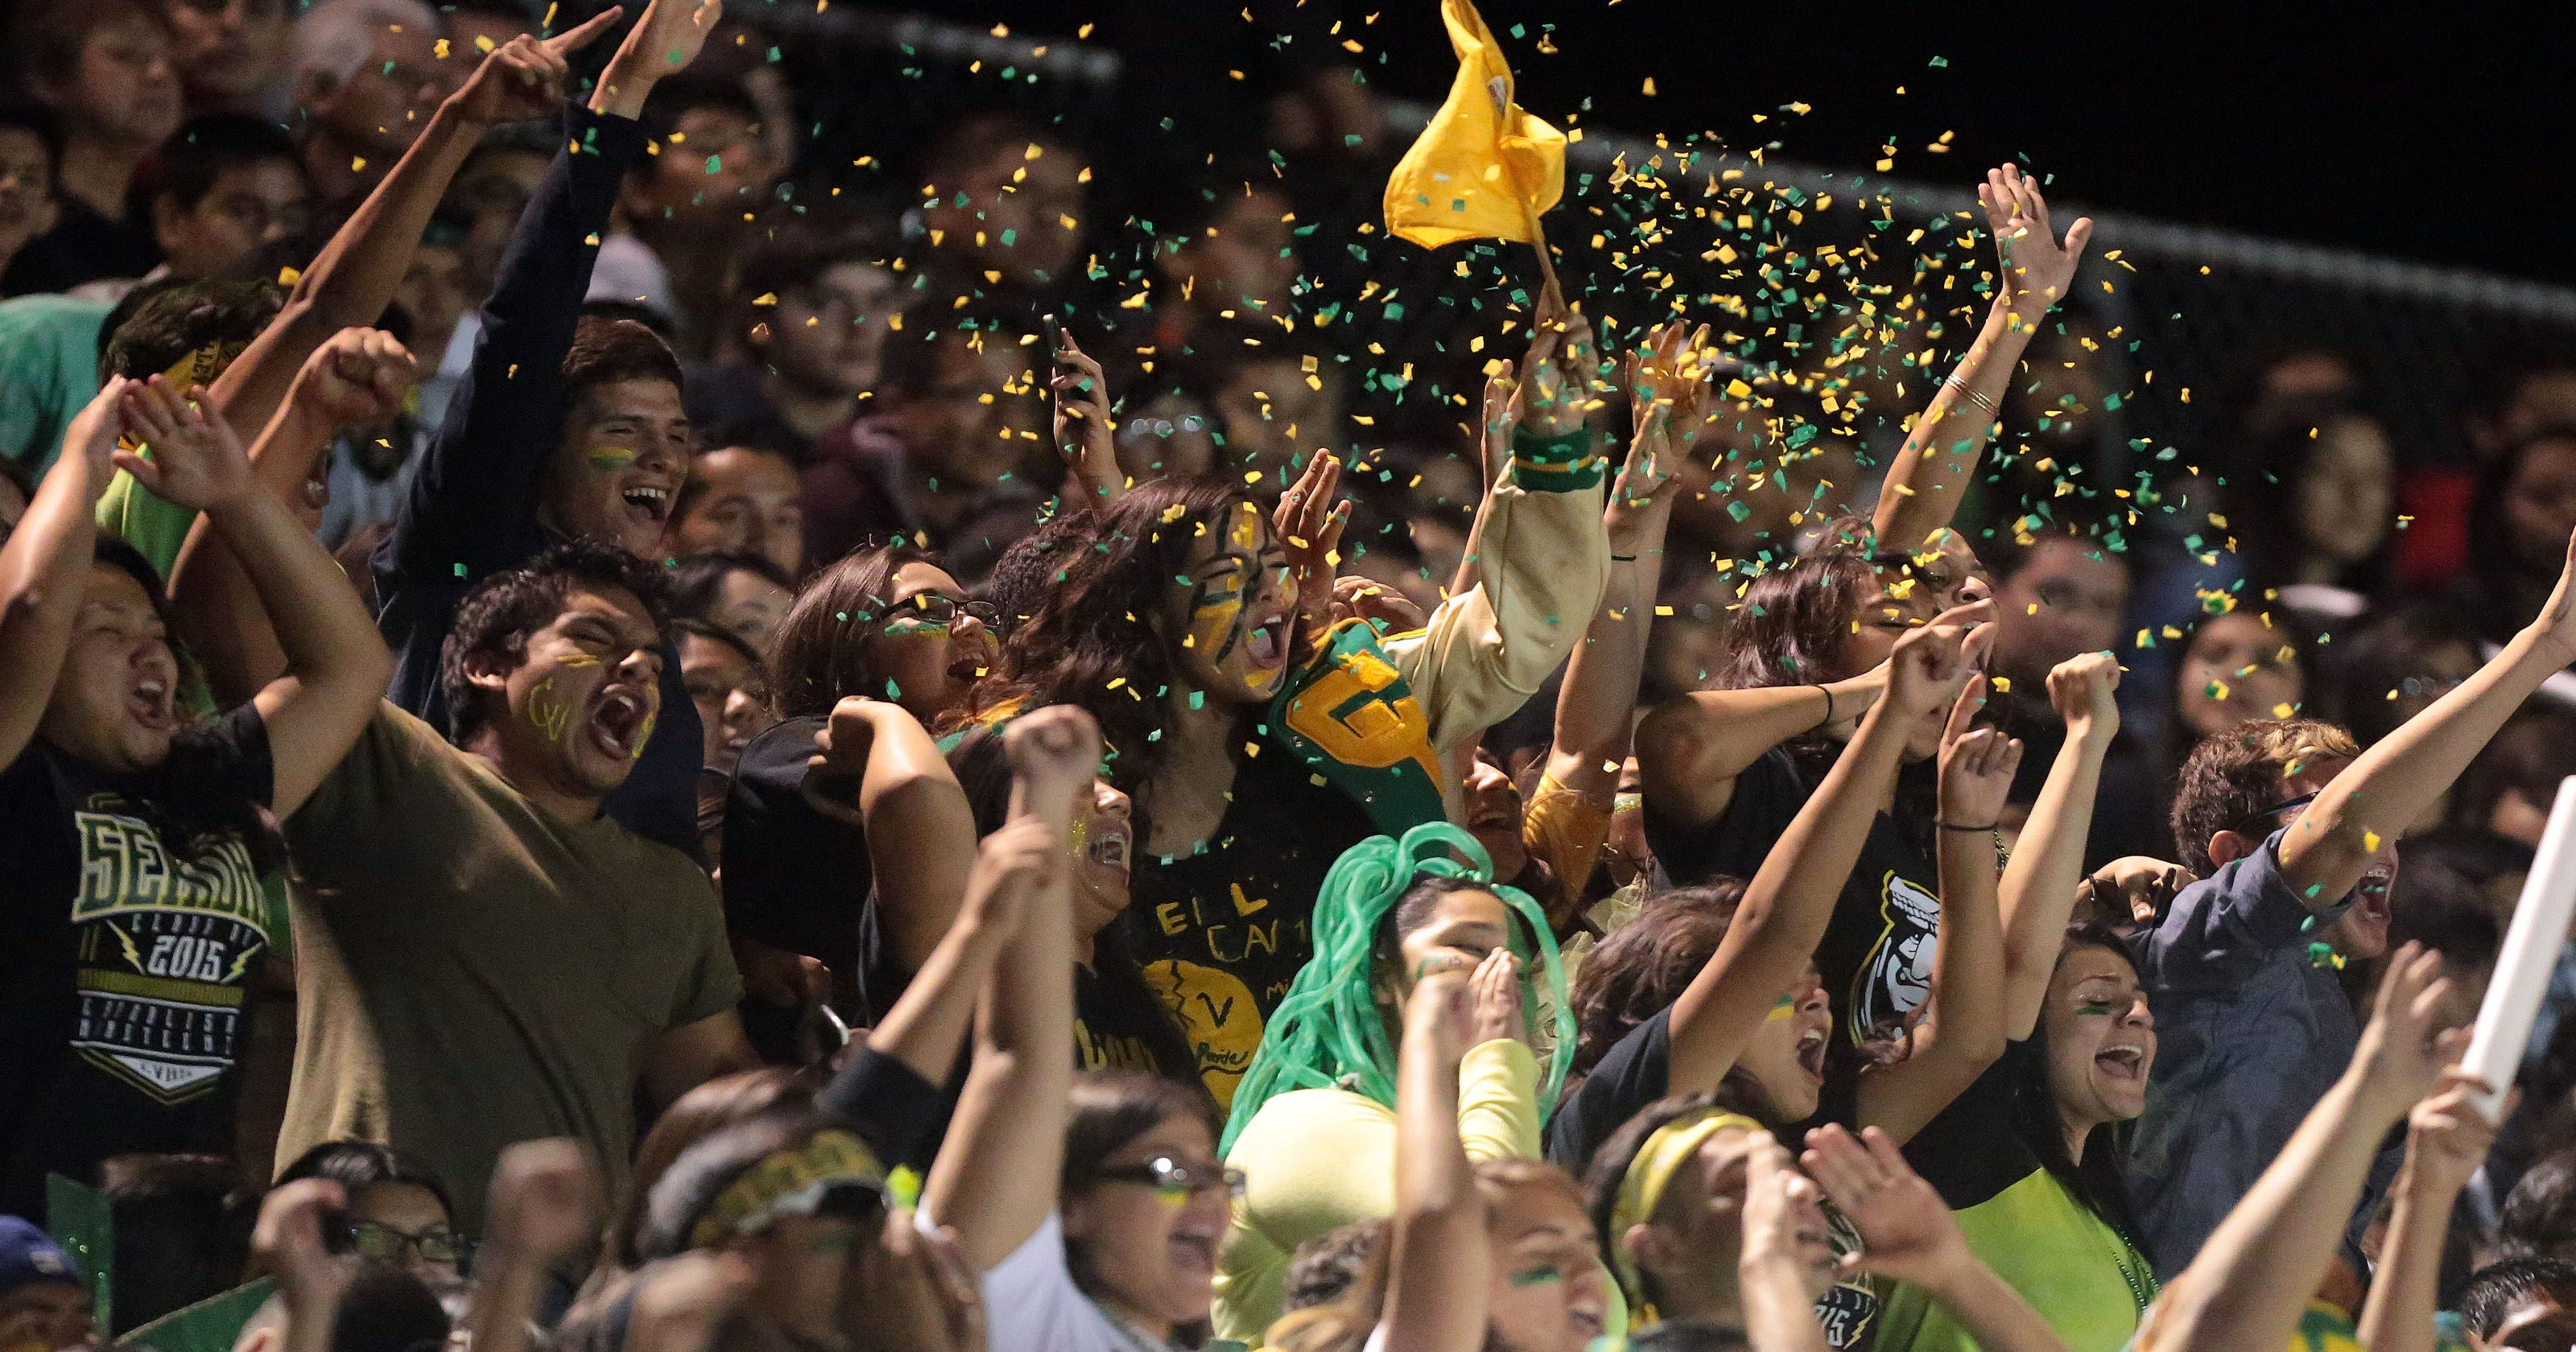 Set your GPS for these 10 local high school football games